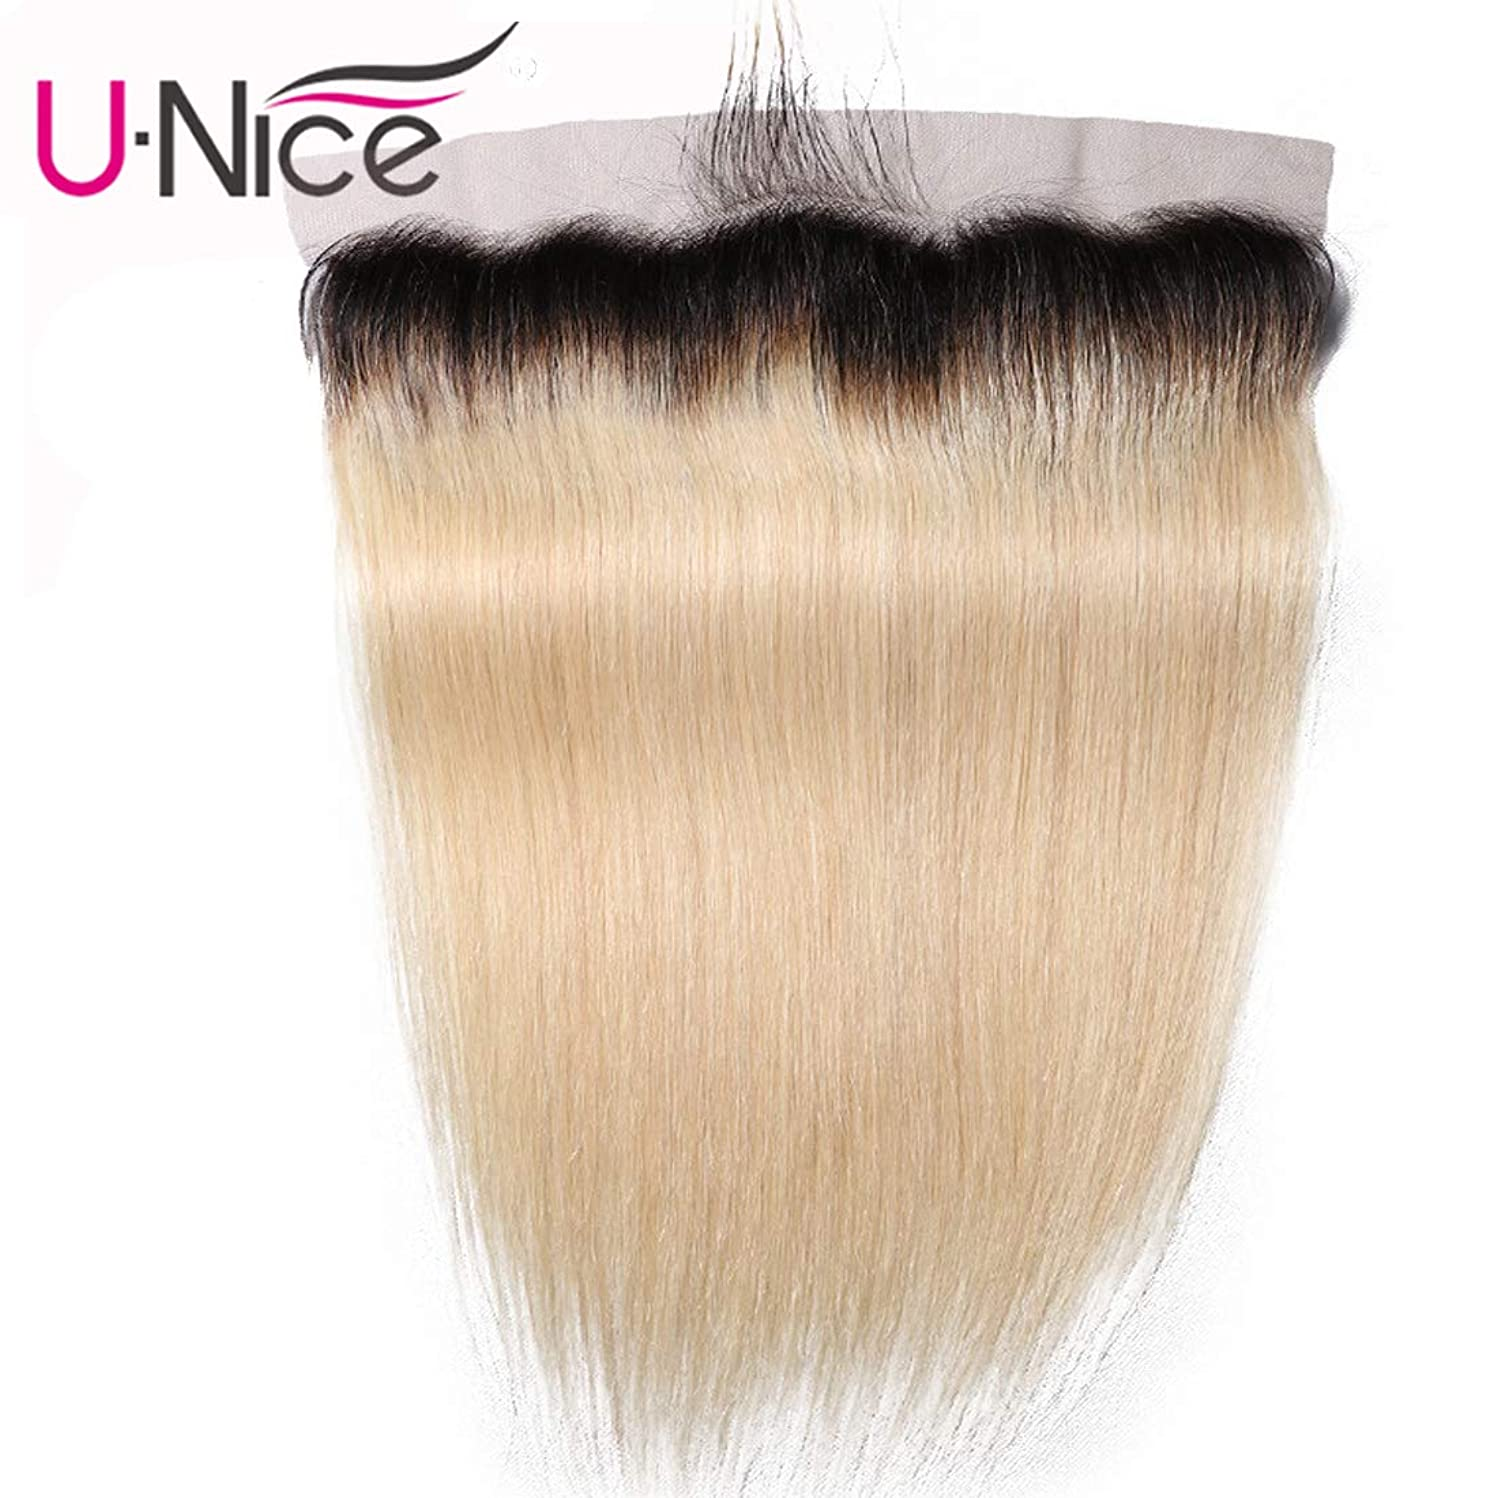 UNice Hair 10A Brazilian Ombre Blonde Straight Hair 13x4 Lace Frontal Closure, Free Part with Baby Hair, 100% Human Remy Hair Dark Roots 1b 613 Blonde Color (12'' Frontal)